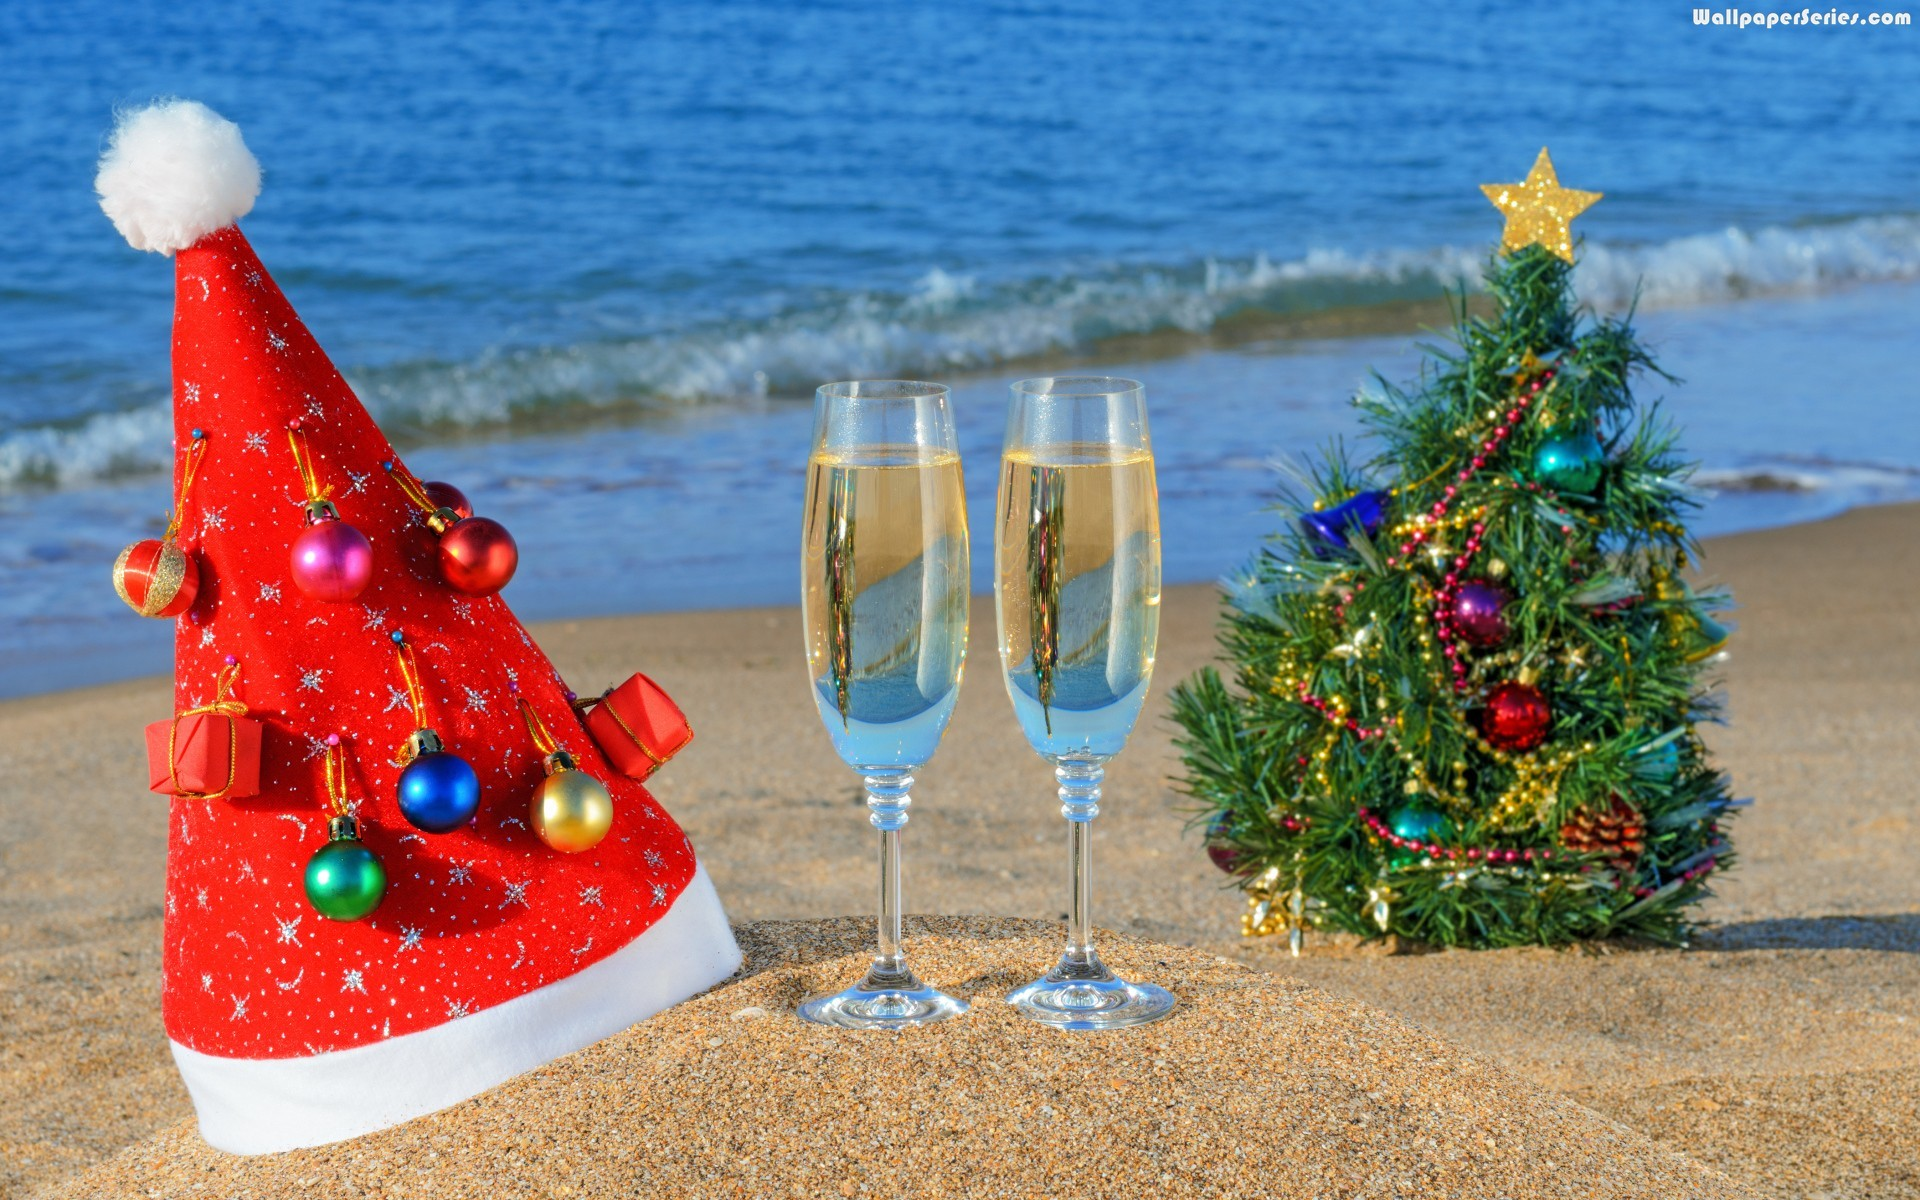 Christmas beach picture from all around the world